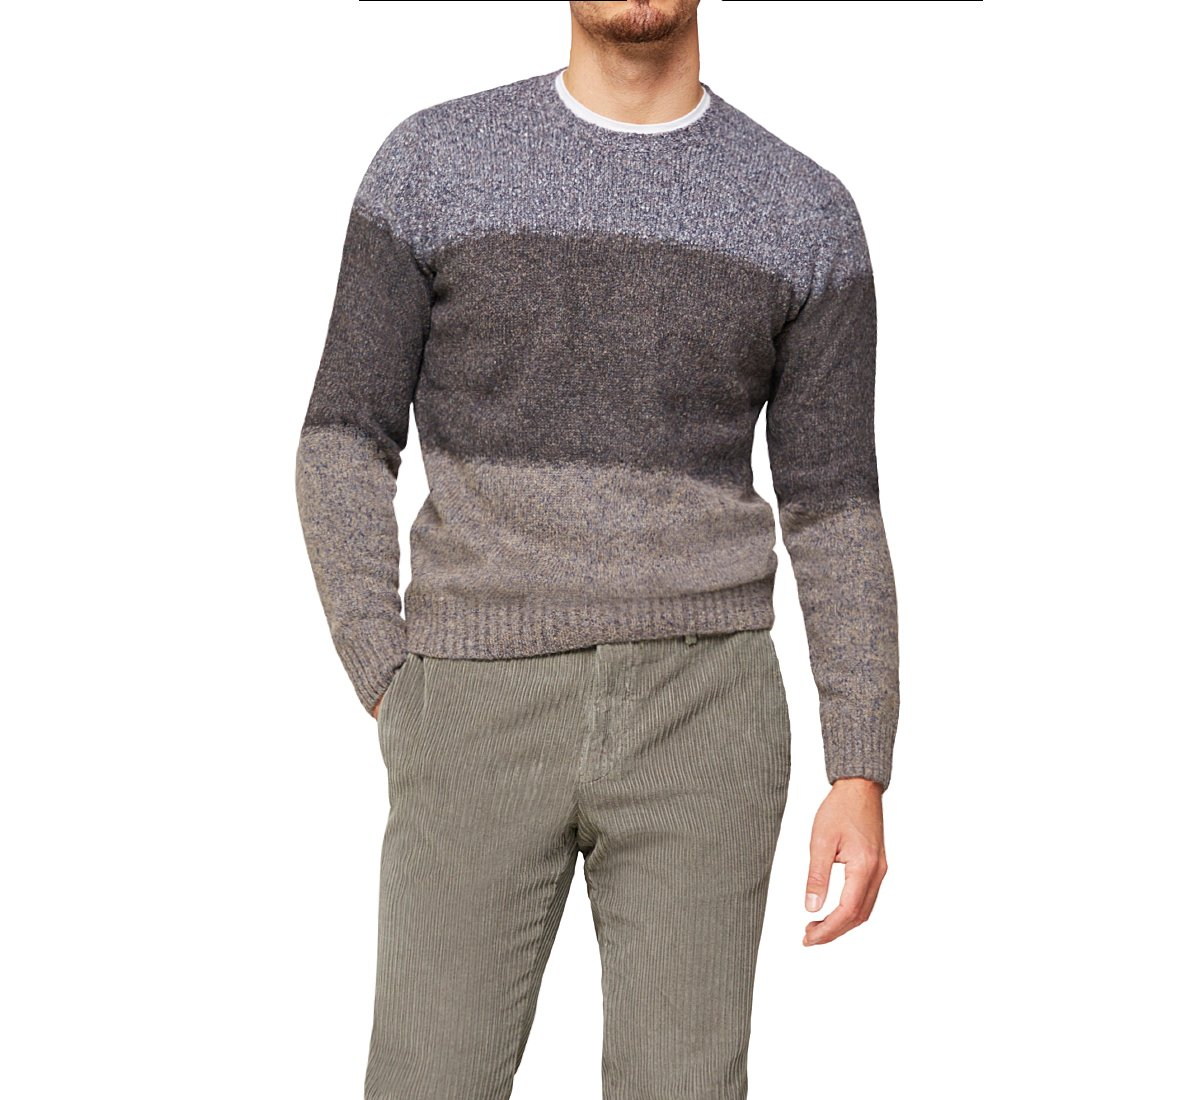 Sweater with horizontal stripes